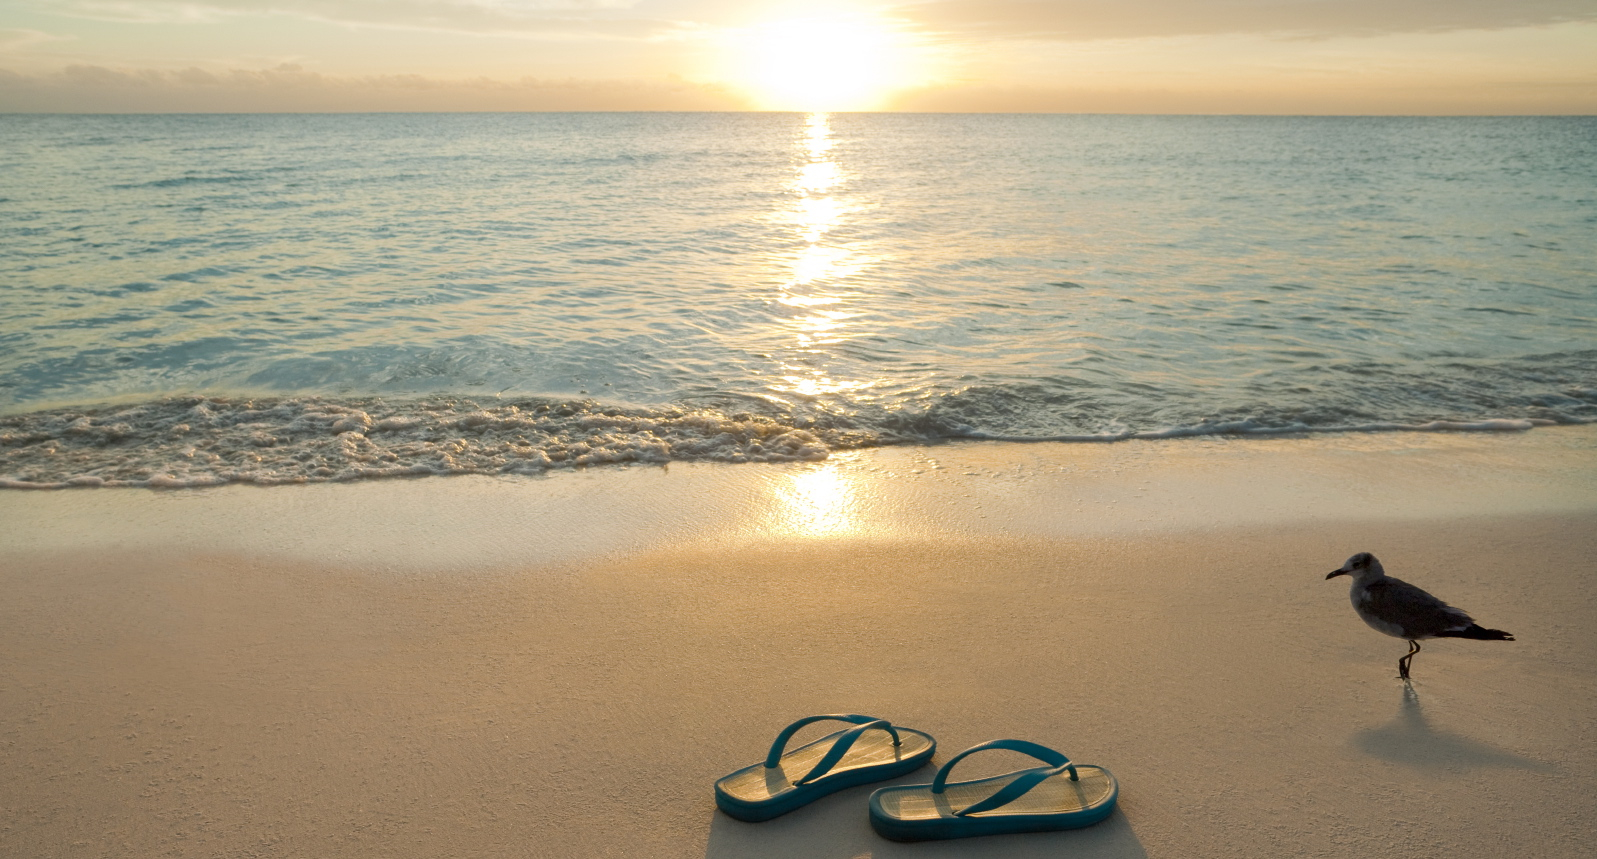 Sunrise on flip-flops and bird on the beach.